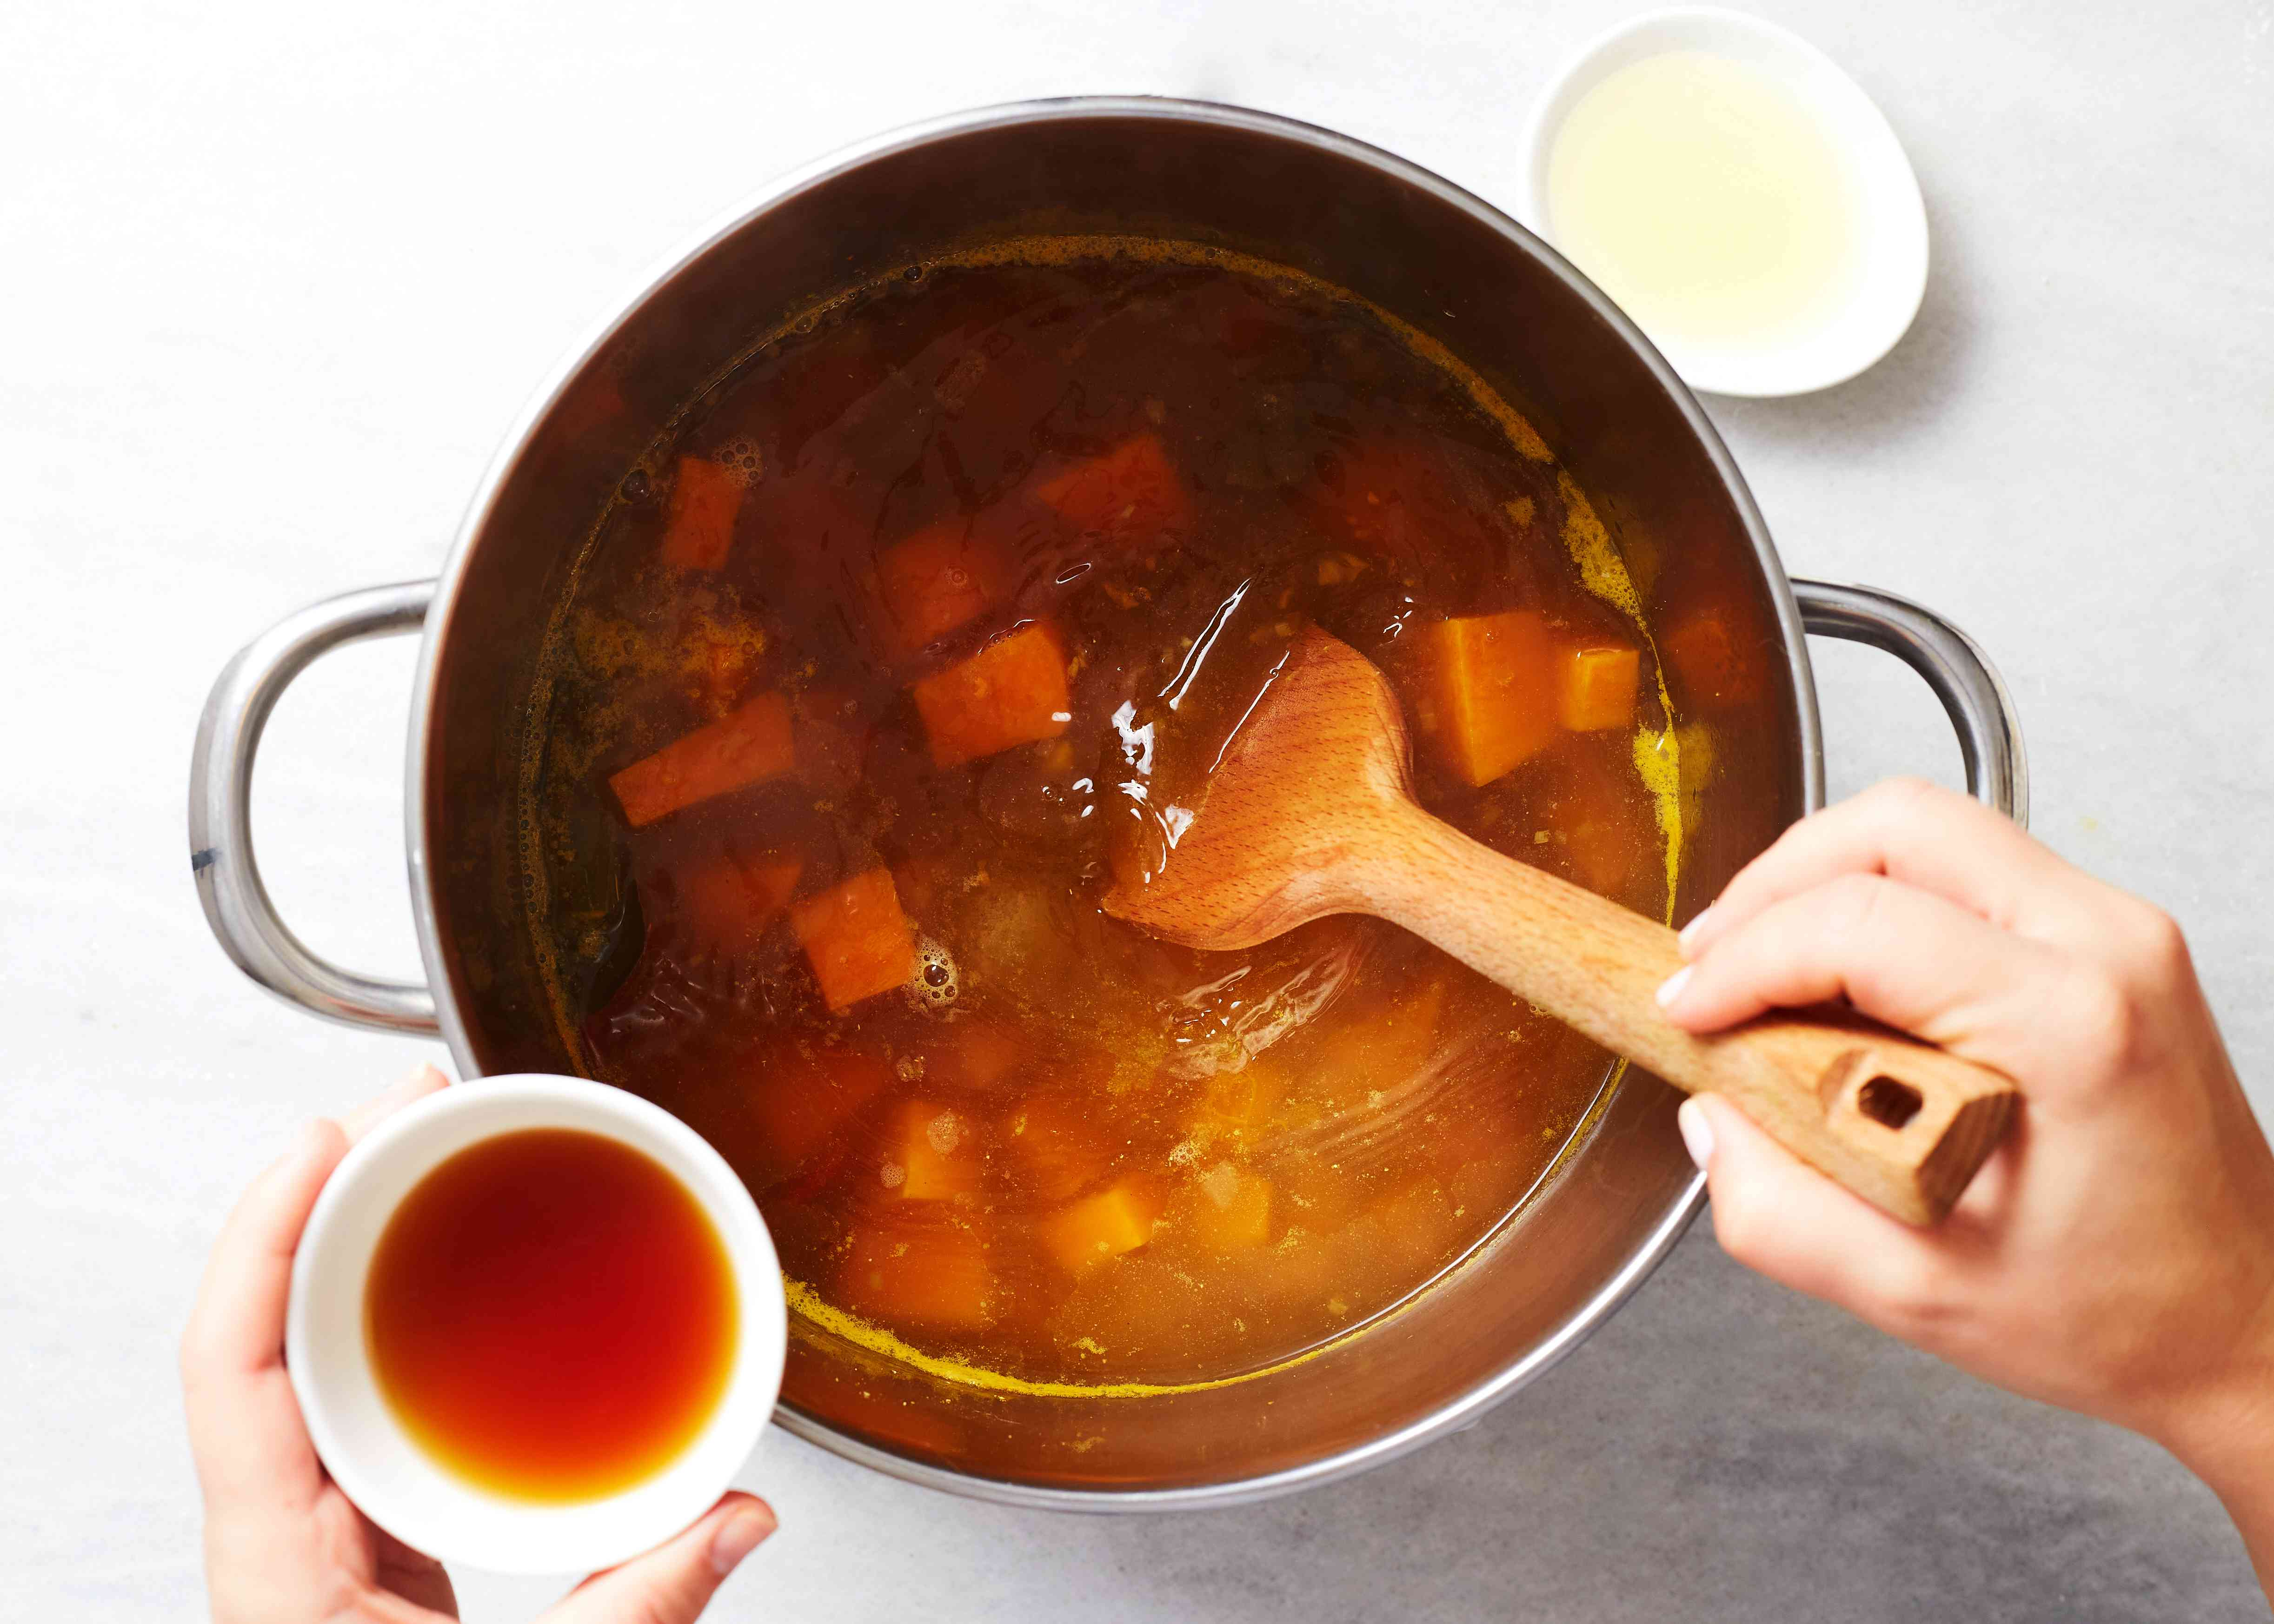 add turmeric, ground coriander and cumin, fish sauce, shrimp paste, brown sugar, and lime juice to the soup in the pot